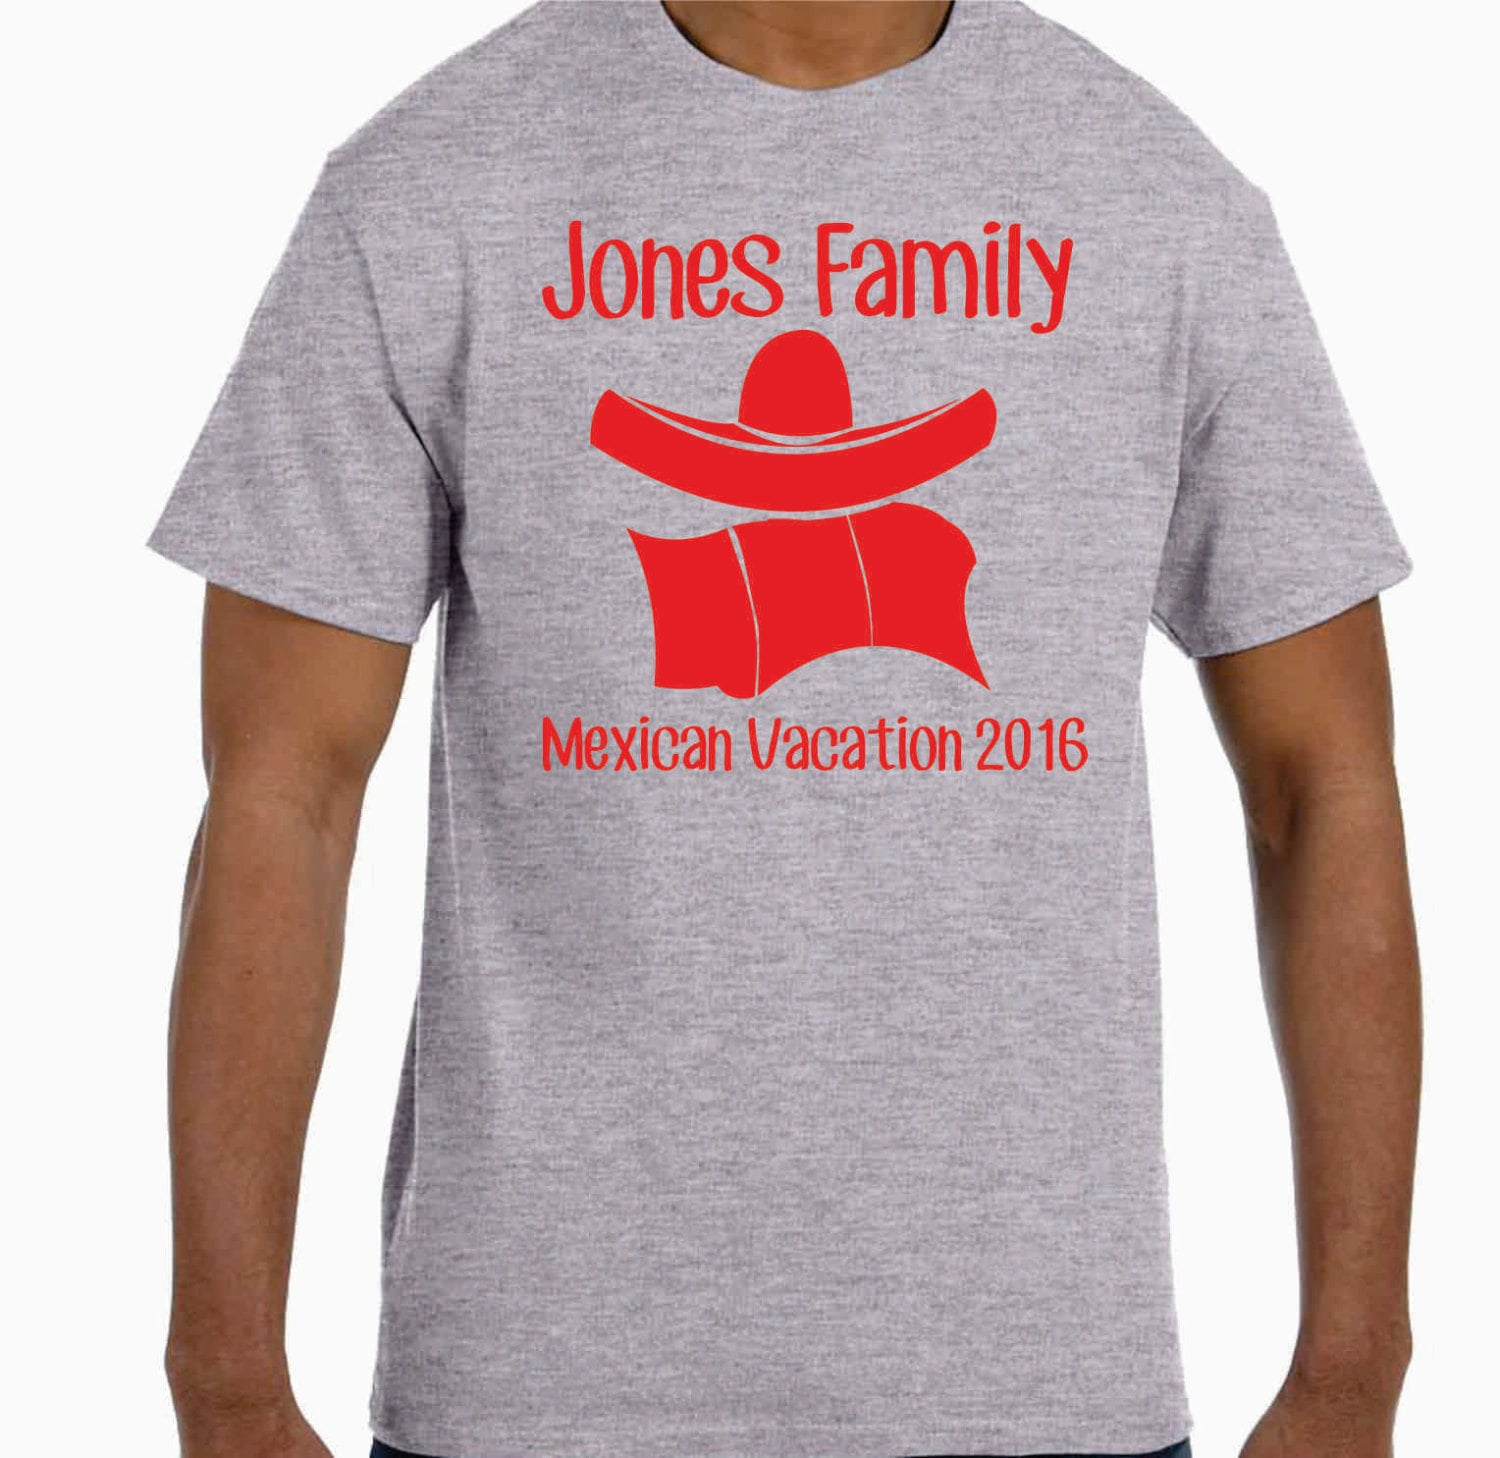 Lot Of 10 Personalized Mexican Family Vacation T-shirts